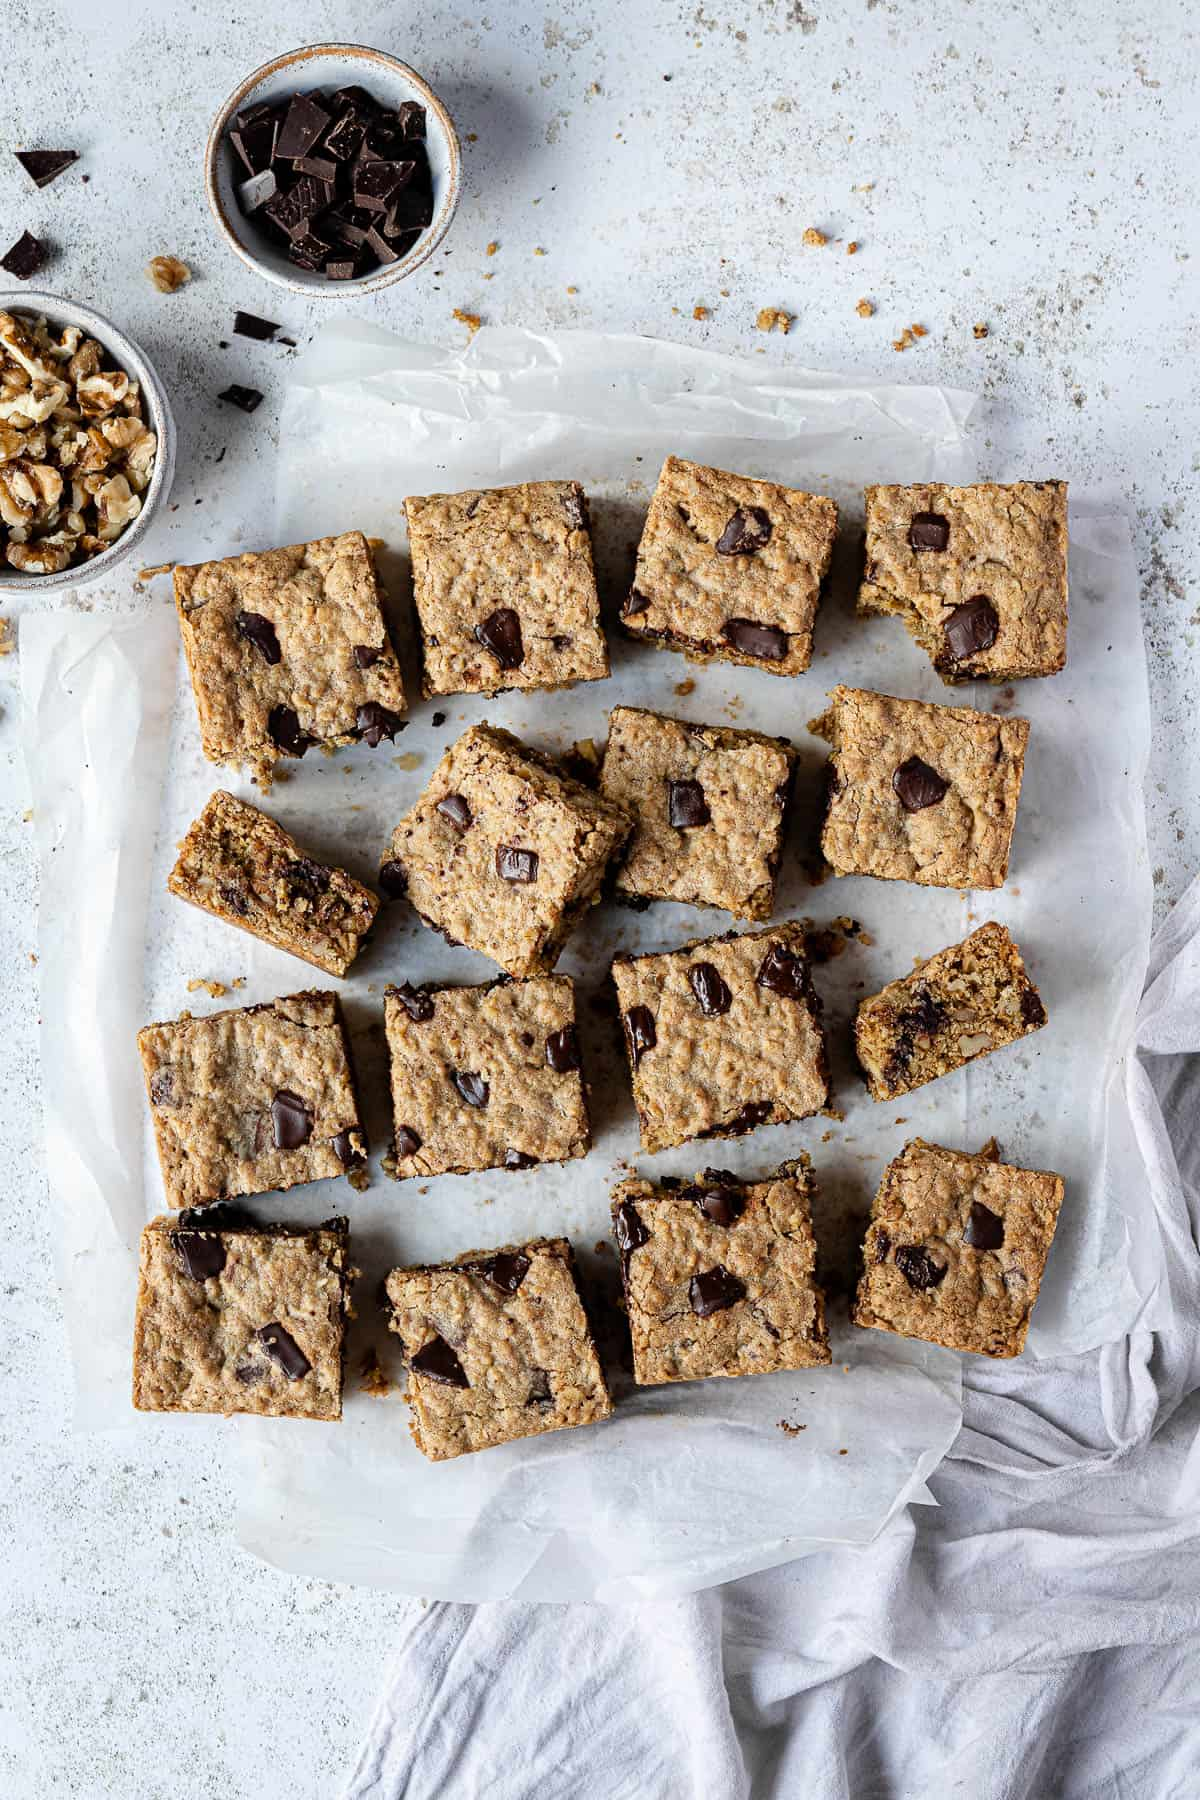 Oatmeal cookie bars on a sheet of baking parchment on a white surface with bowls of chocolate and walnuts and a grey cloth.